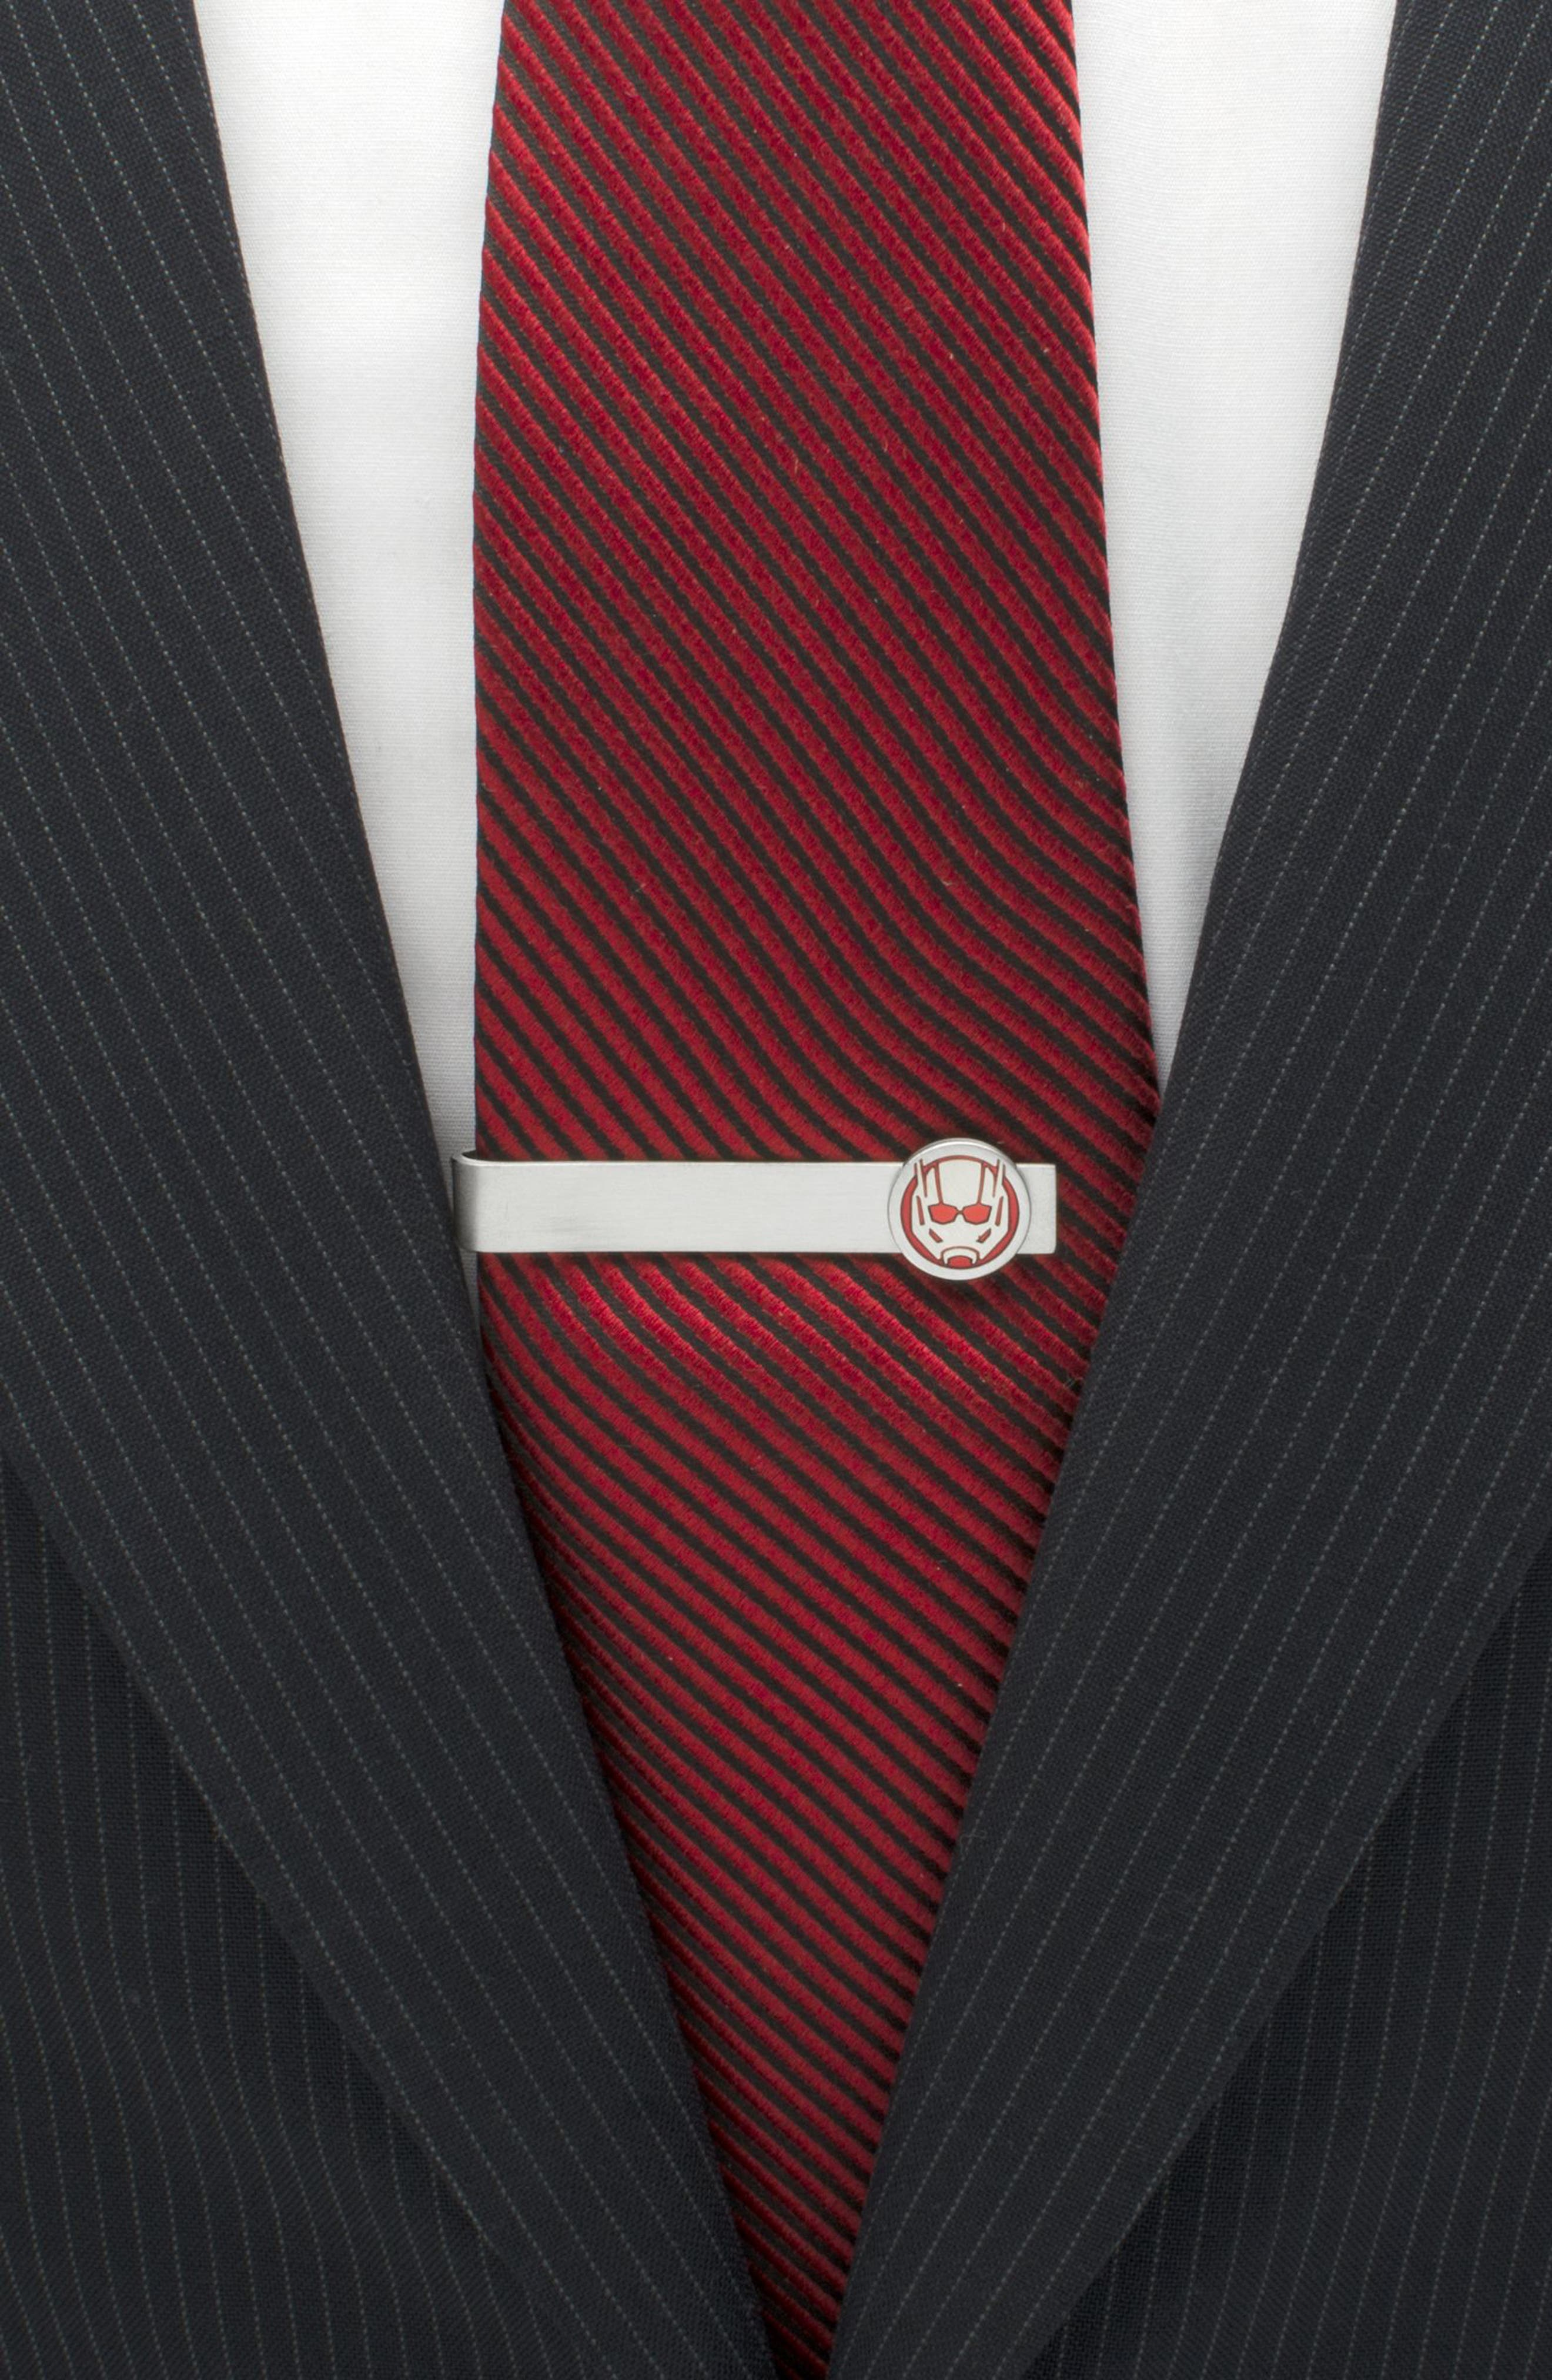 Ant-Man Tie Bar,                             Alternate thumbnail 3, color,                             RED/ SILVER